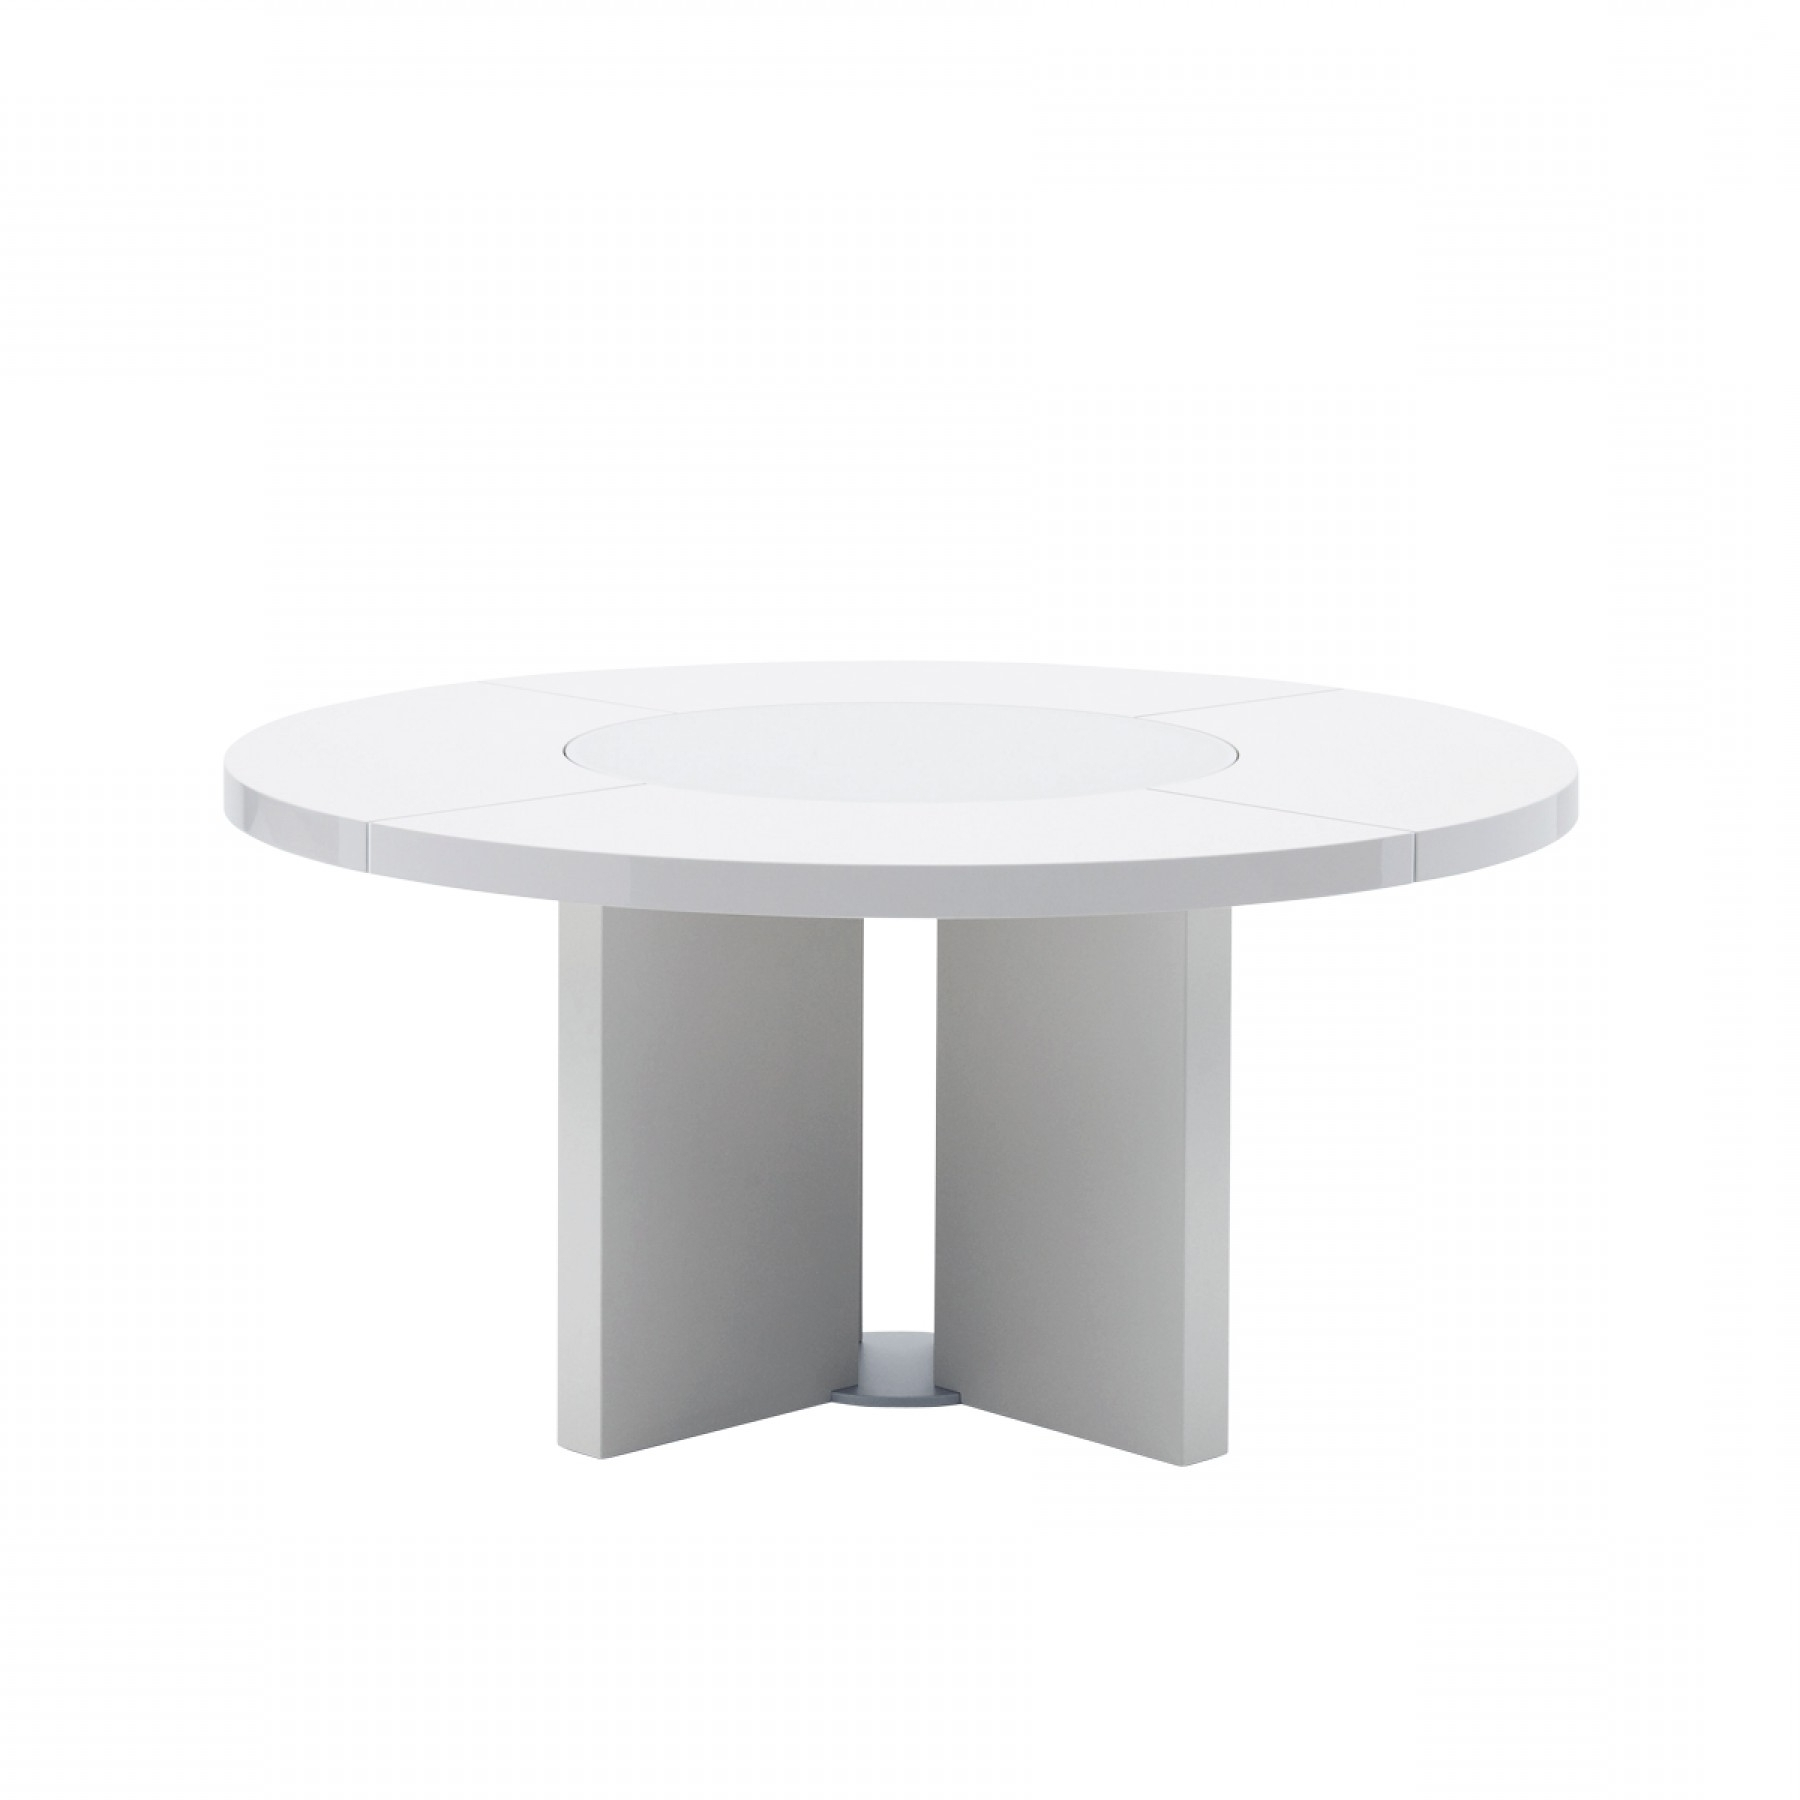 Midollo Glossy White Dining Table – Beyond Furniture Pertaining To Most Up To Date Round White Dining Tables (View 10 of 25)